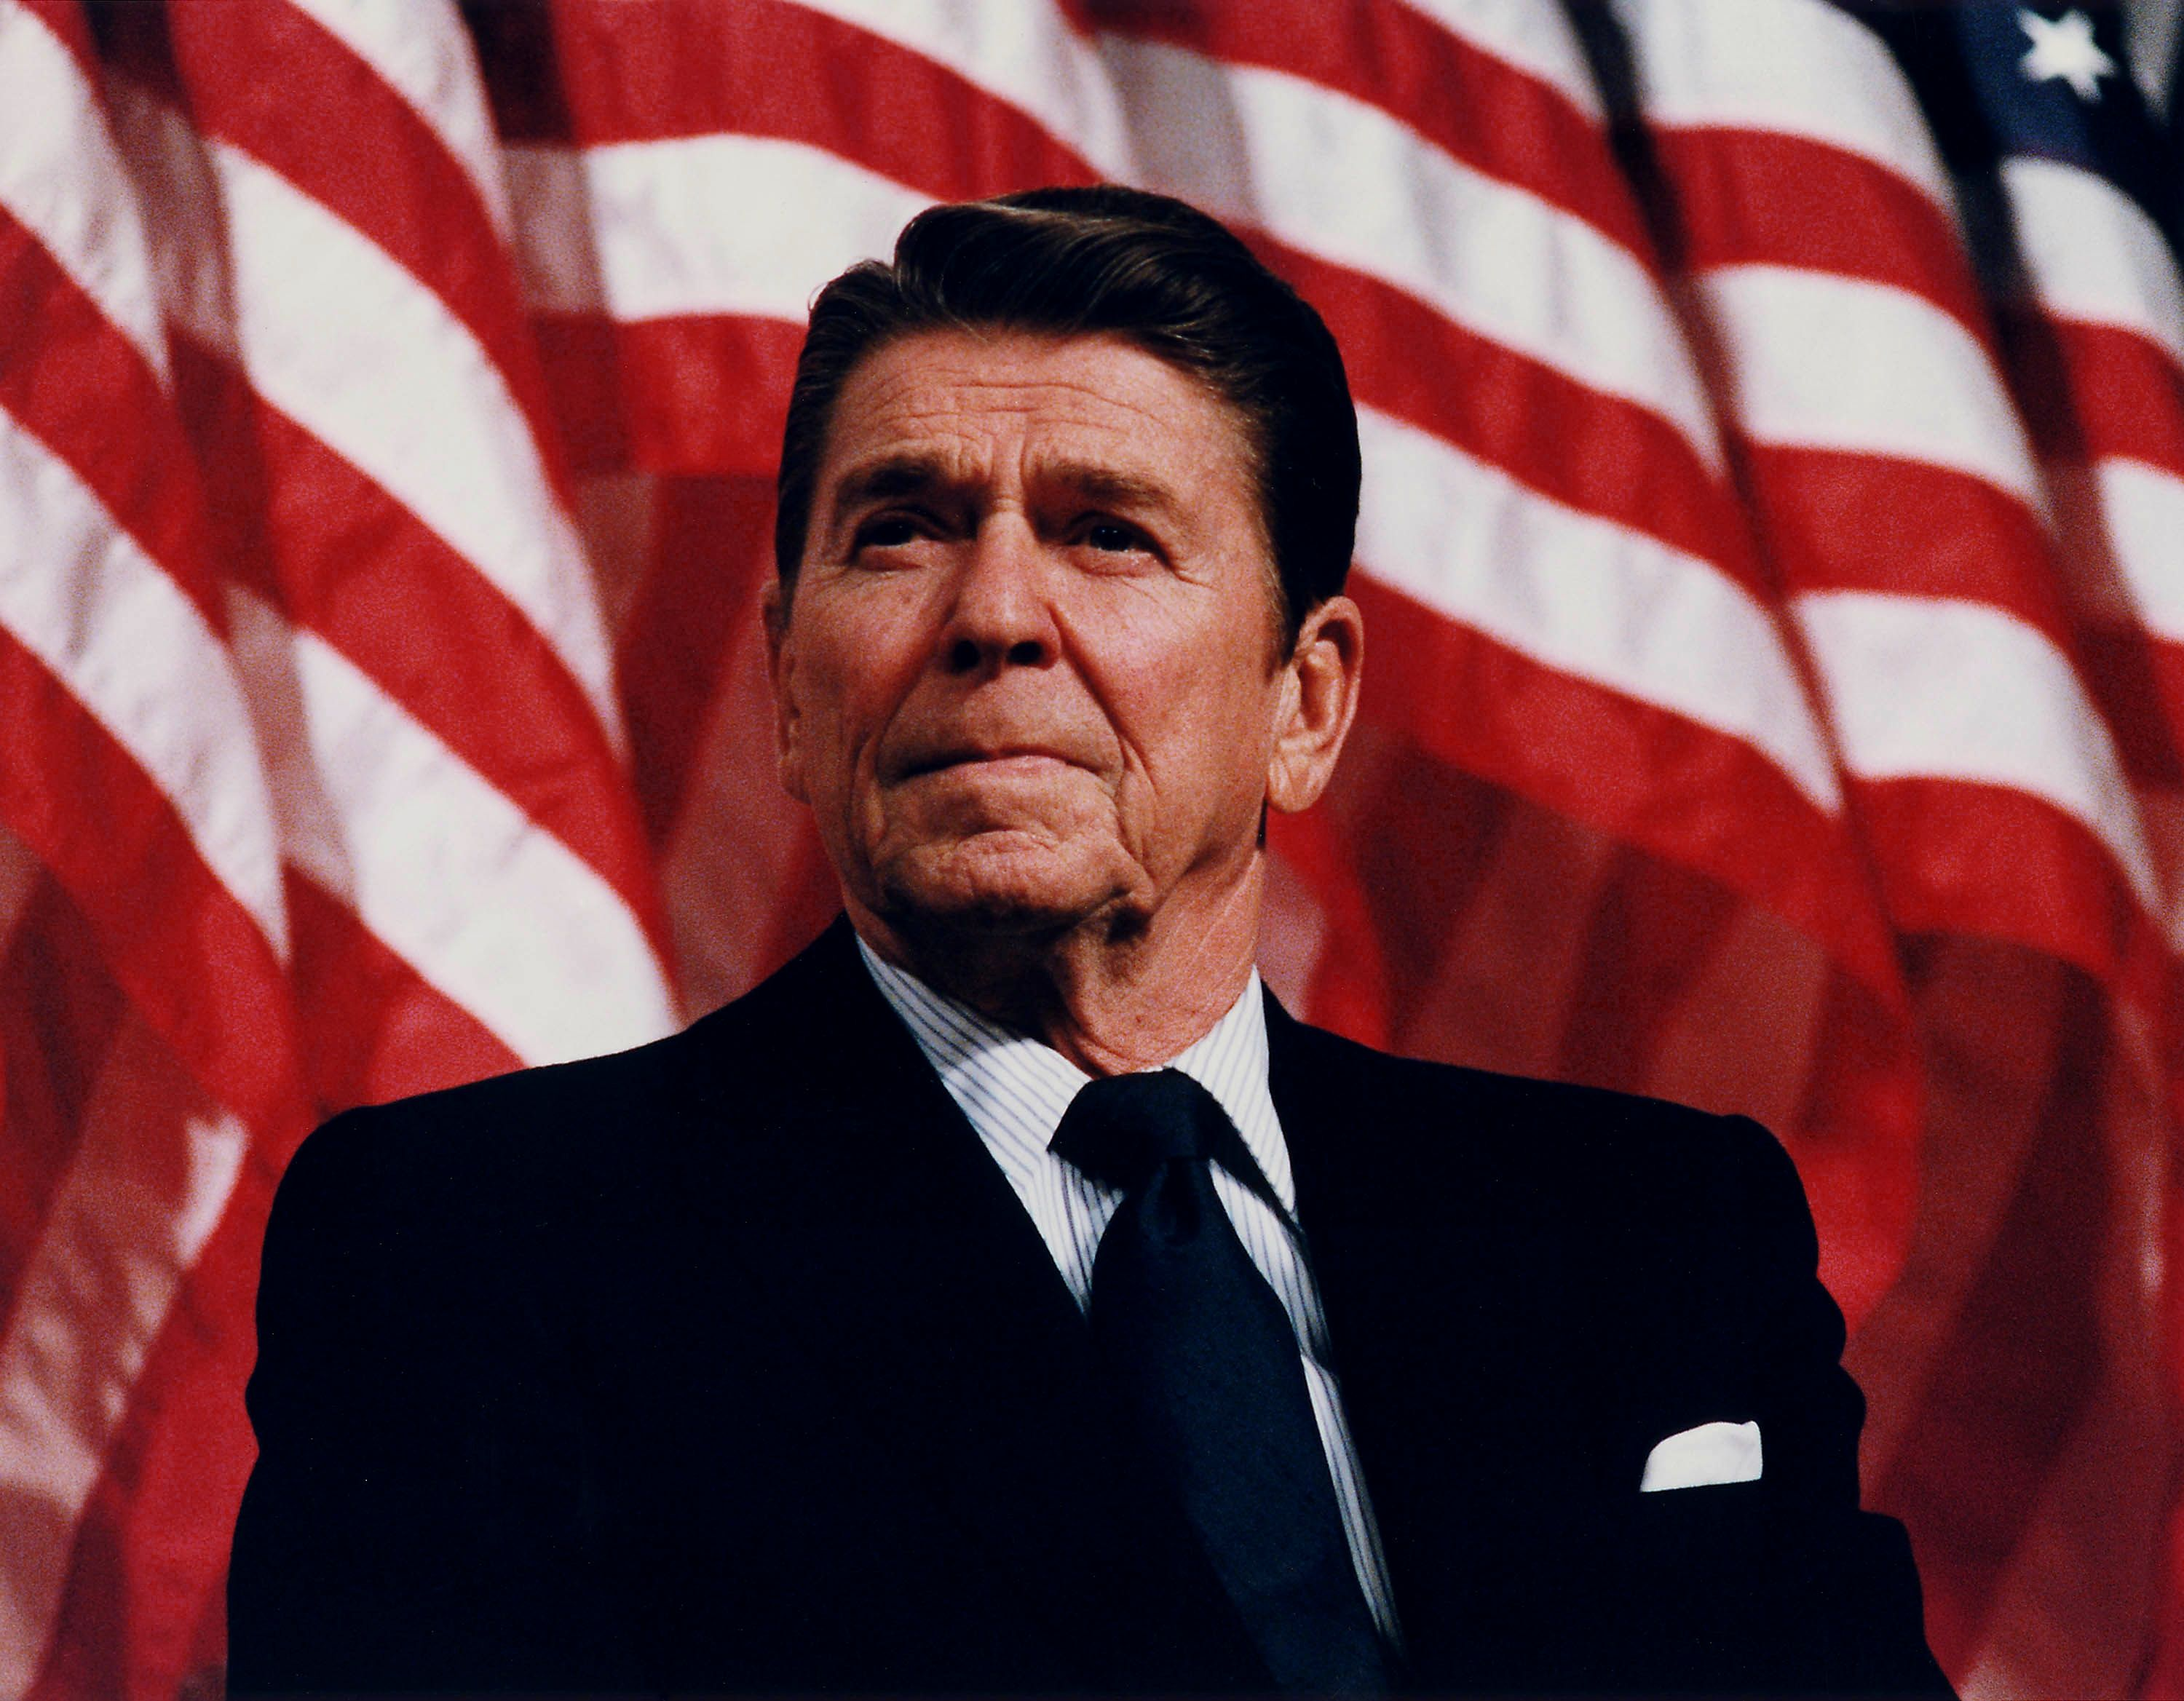 10 Shocking Ronald Reagan Facts You Probably Don't Know